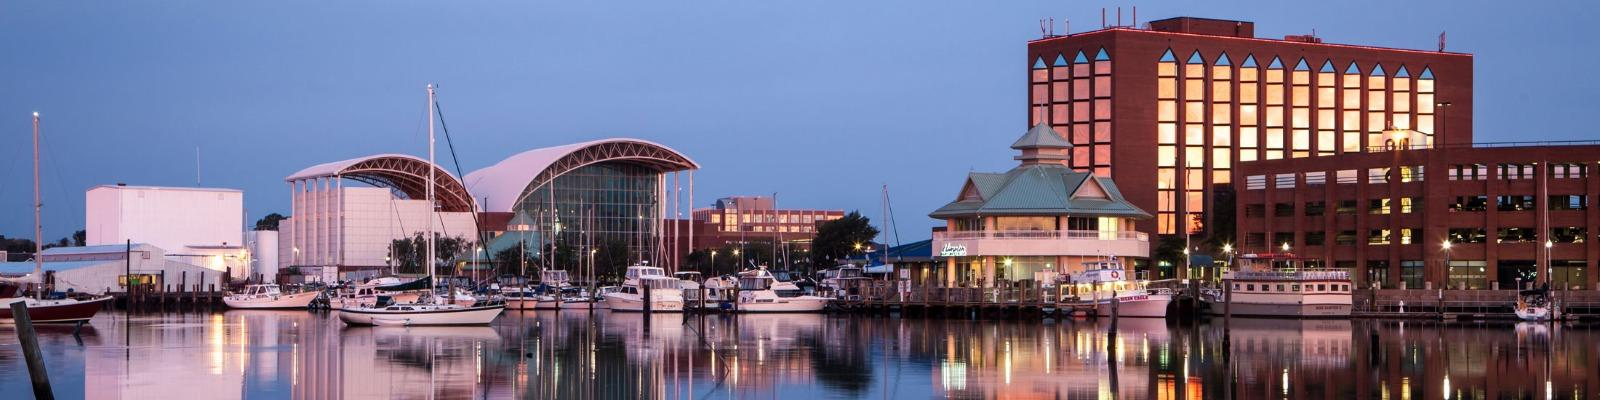 Hampton, Virginia (Image source: VisitHampton.com) Cover